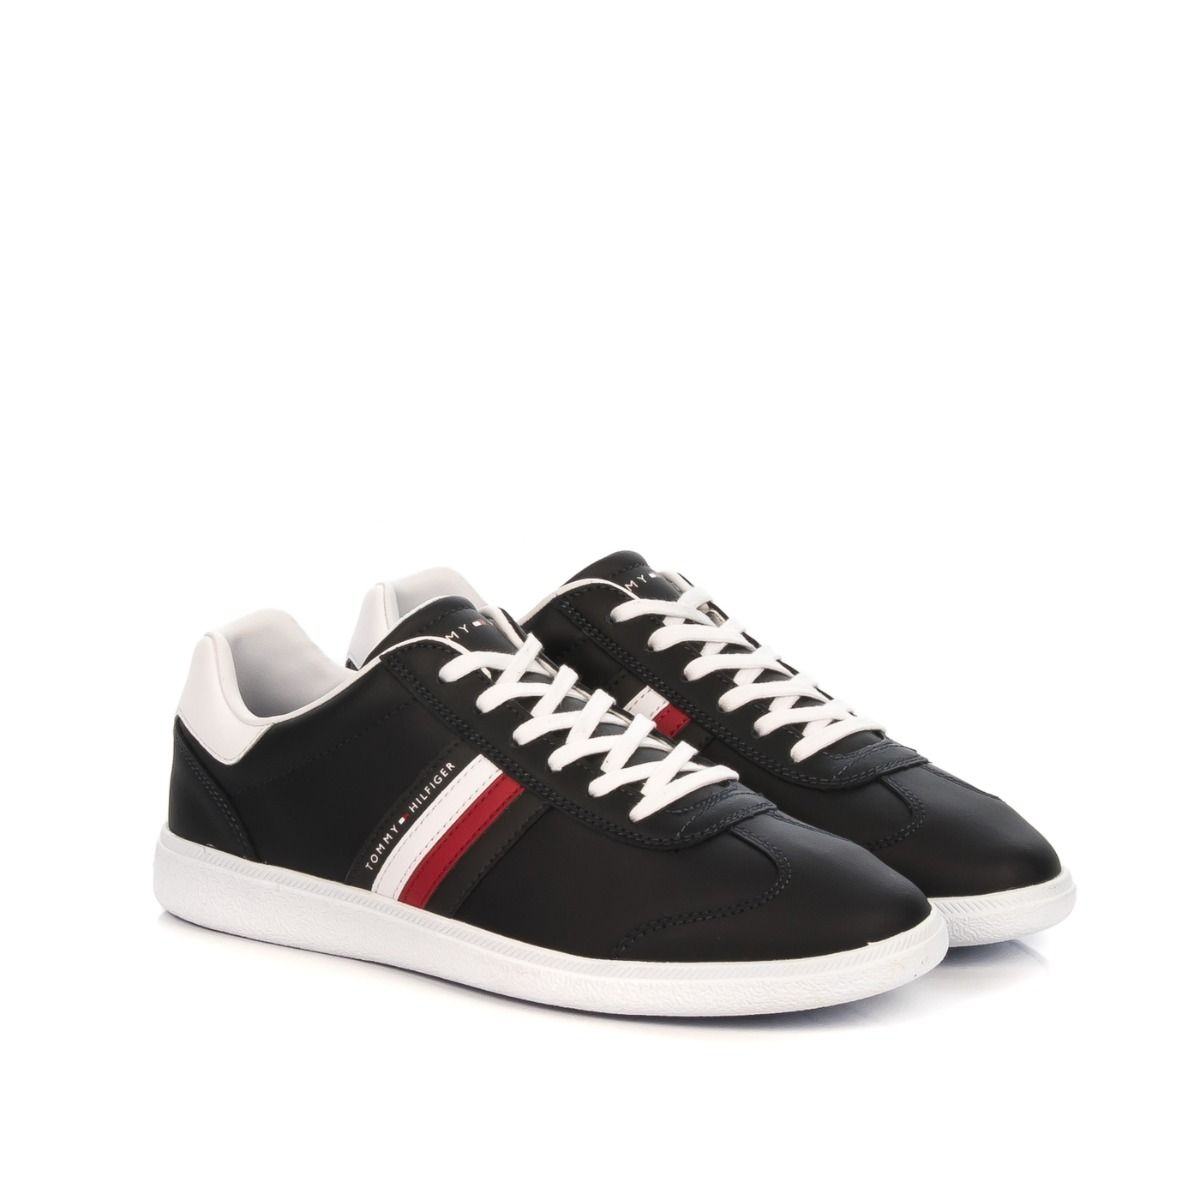 the best attitude 63aef d0cbc TOMMY HILFIGER SNEAKERS UOMO 2038 403 DANNY BLU